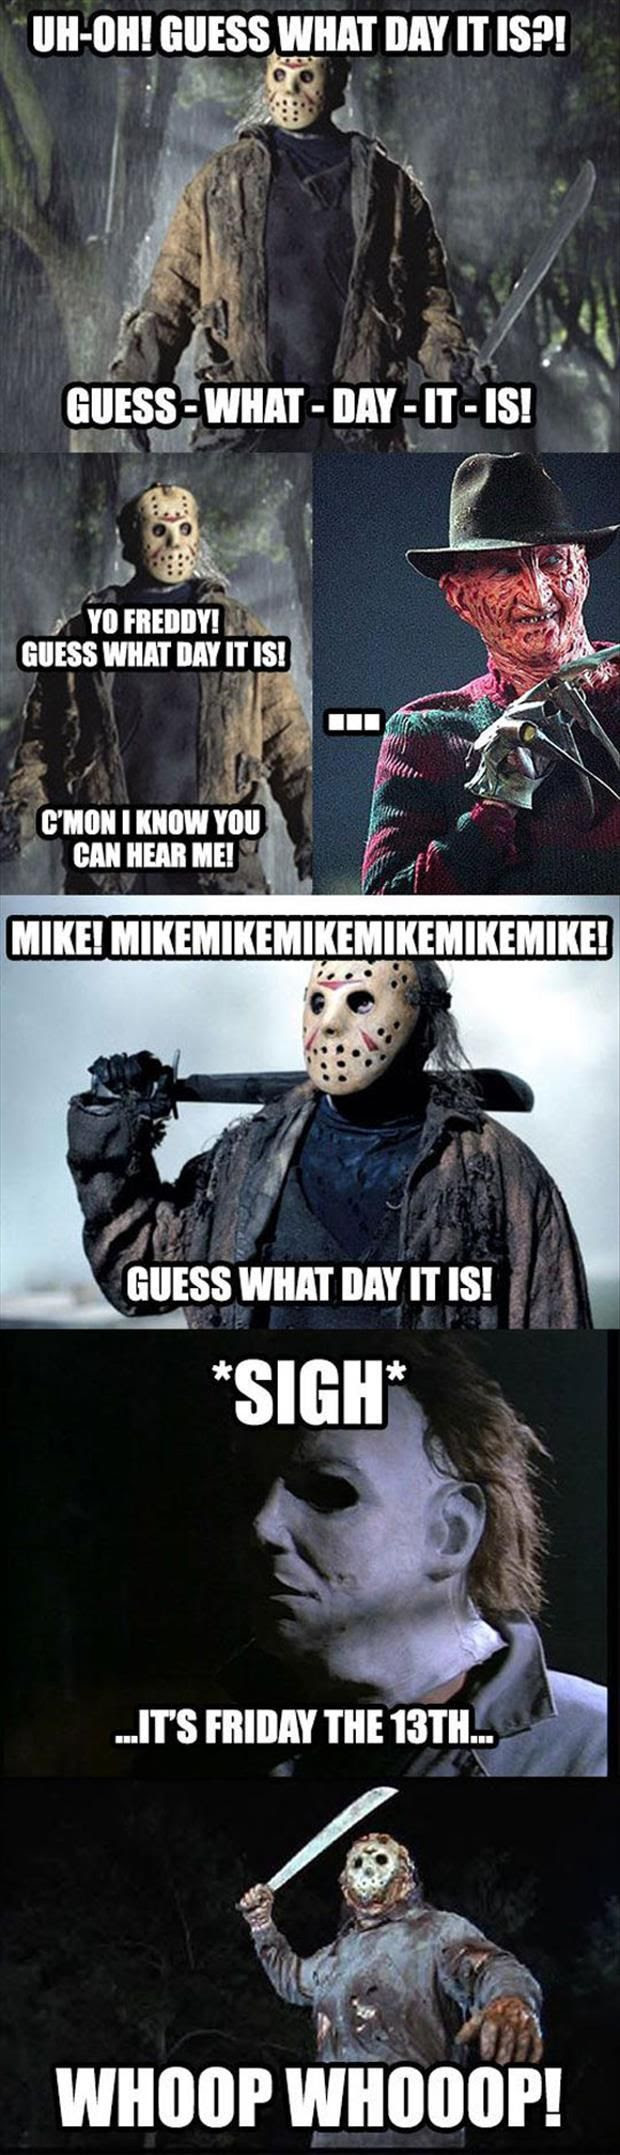 Funny Friday The 13th Quote Pictures Photos And Images For